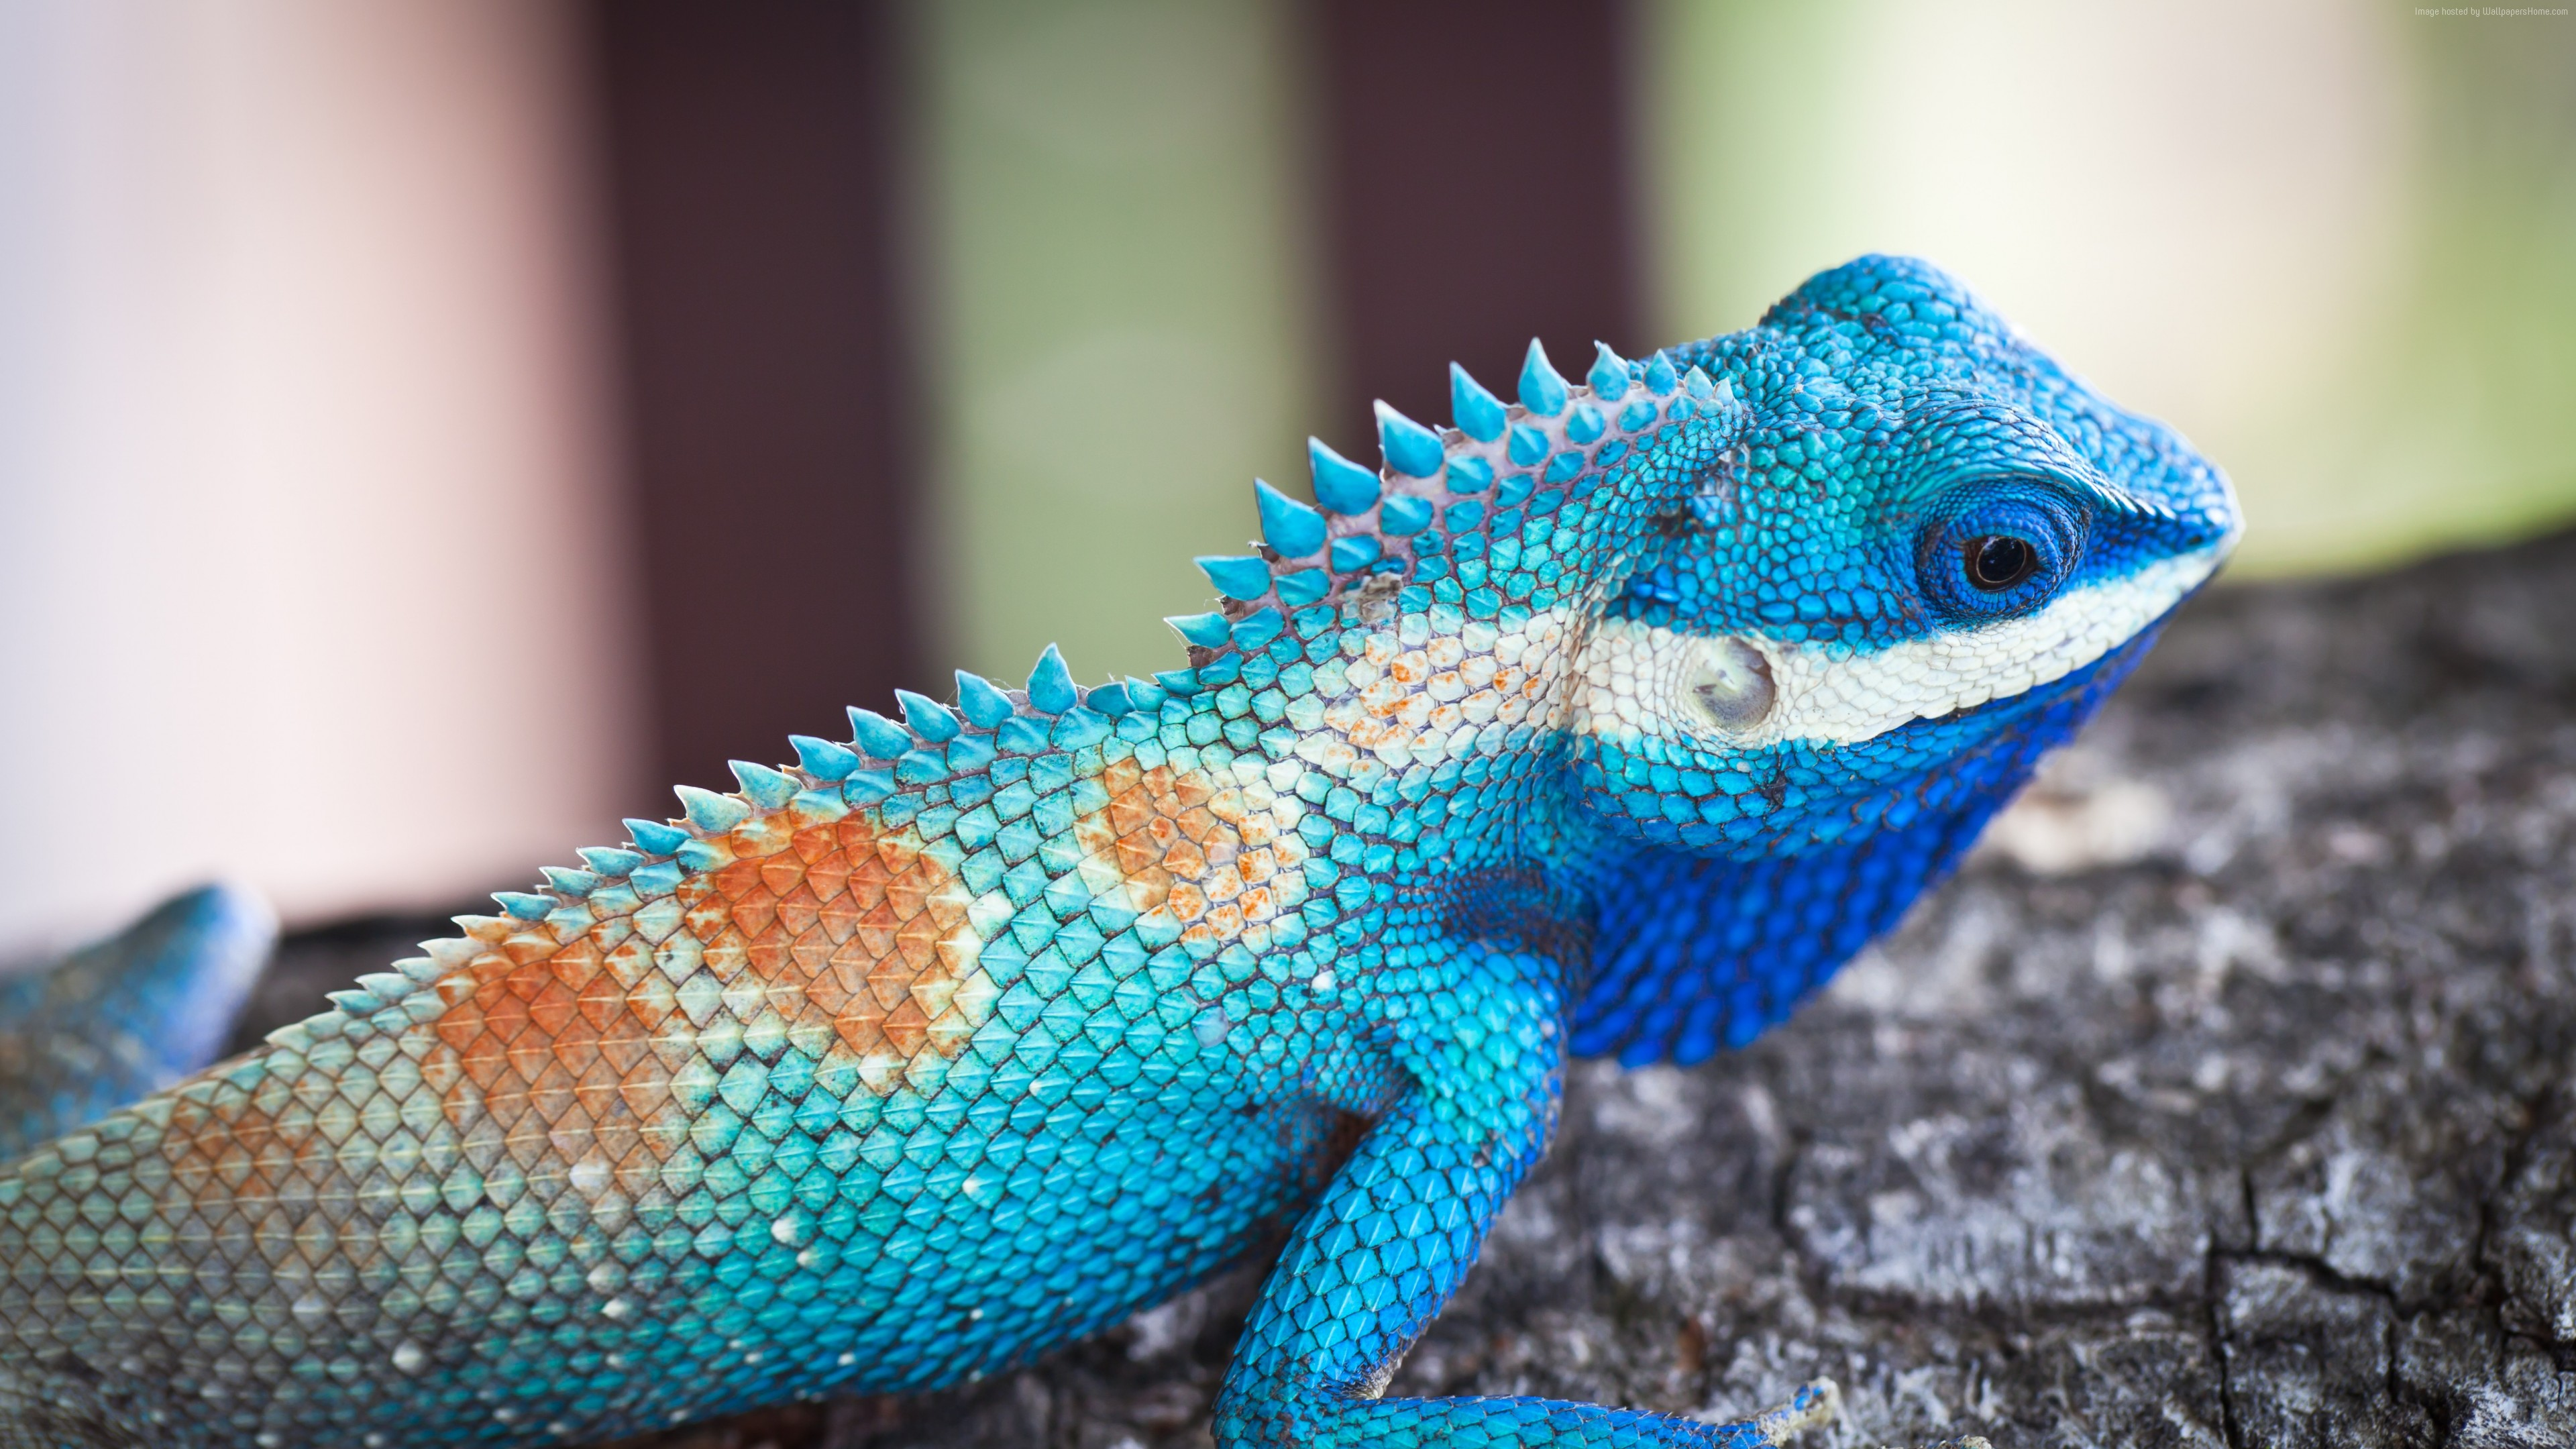 Wallpaper Lacerta viridis, Blue iguana, tree, nature, reptiles, animal, lizard, Animals